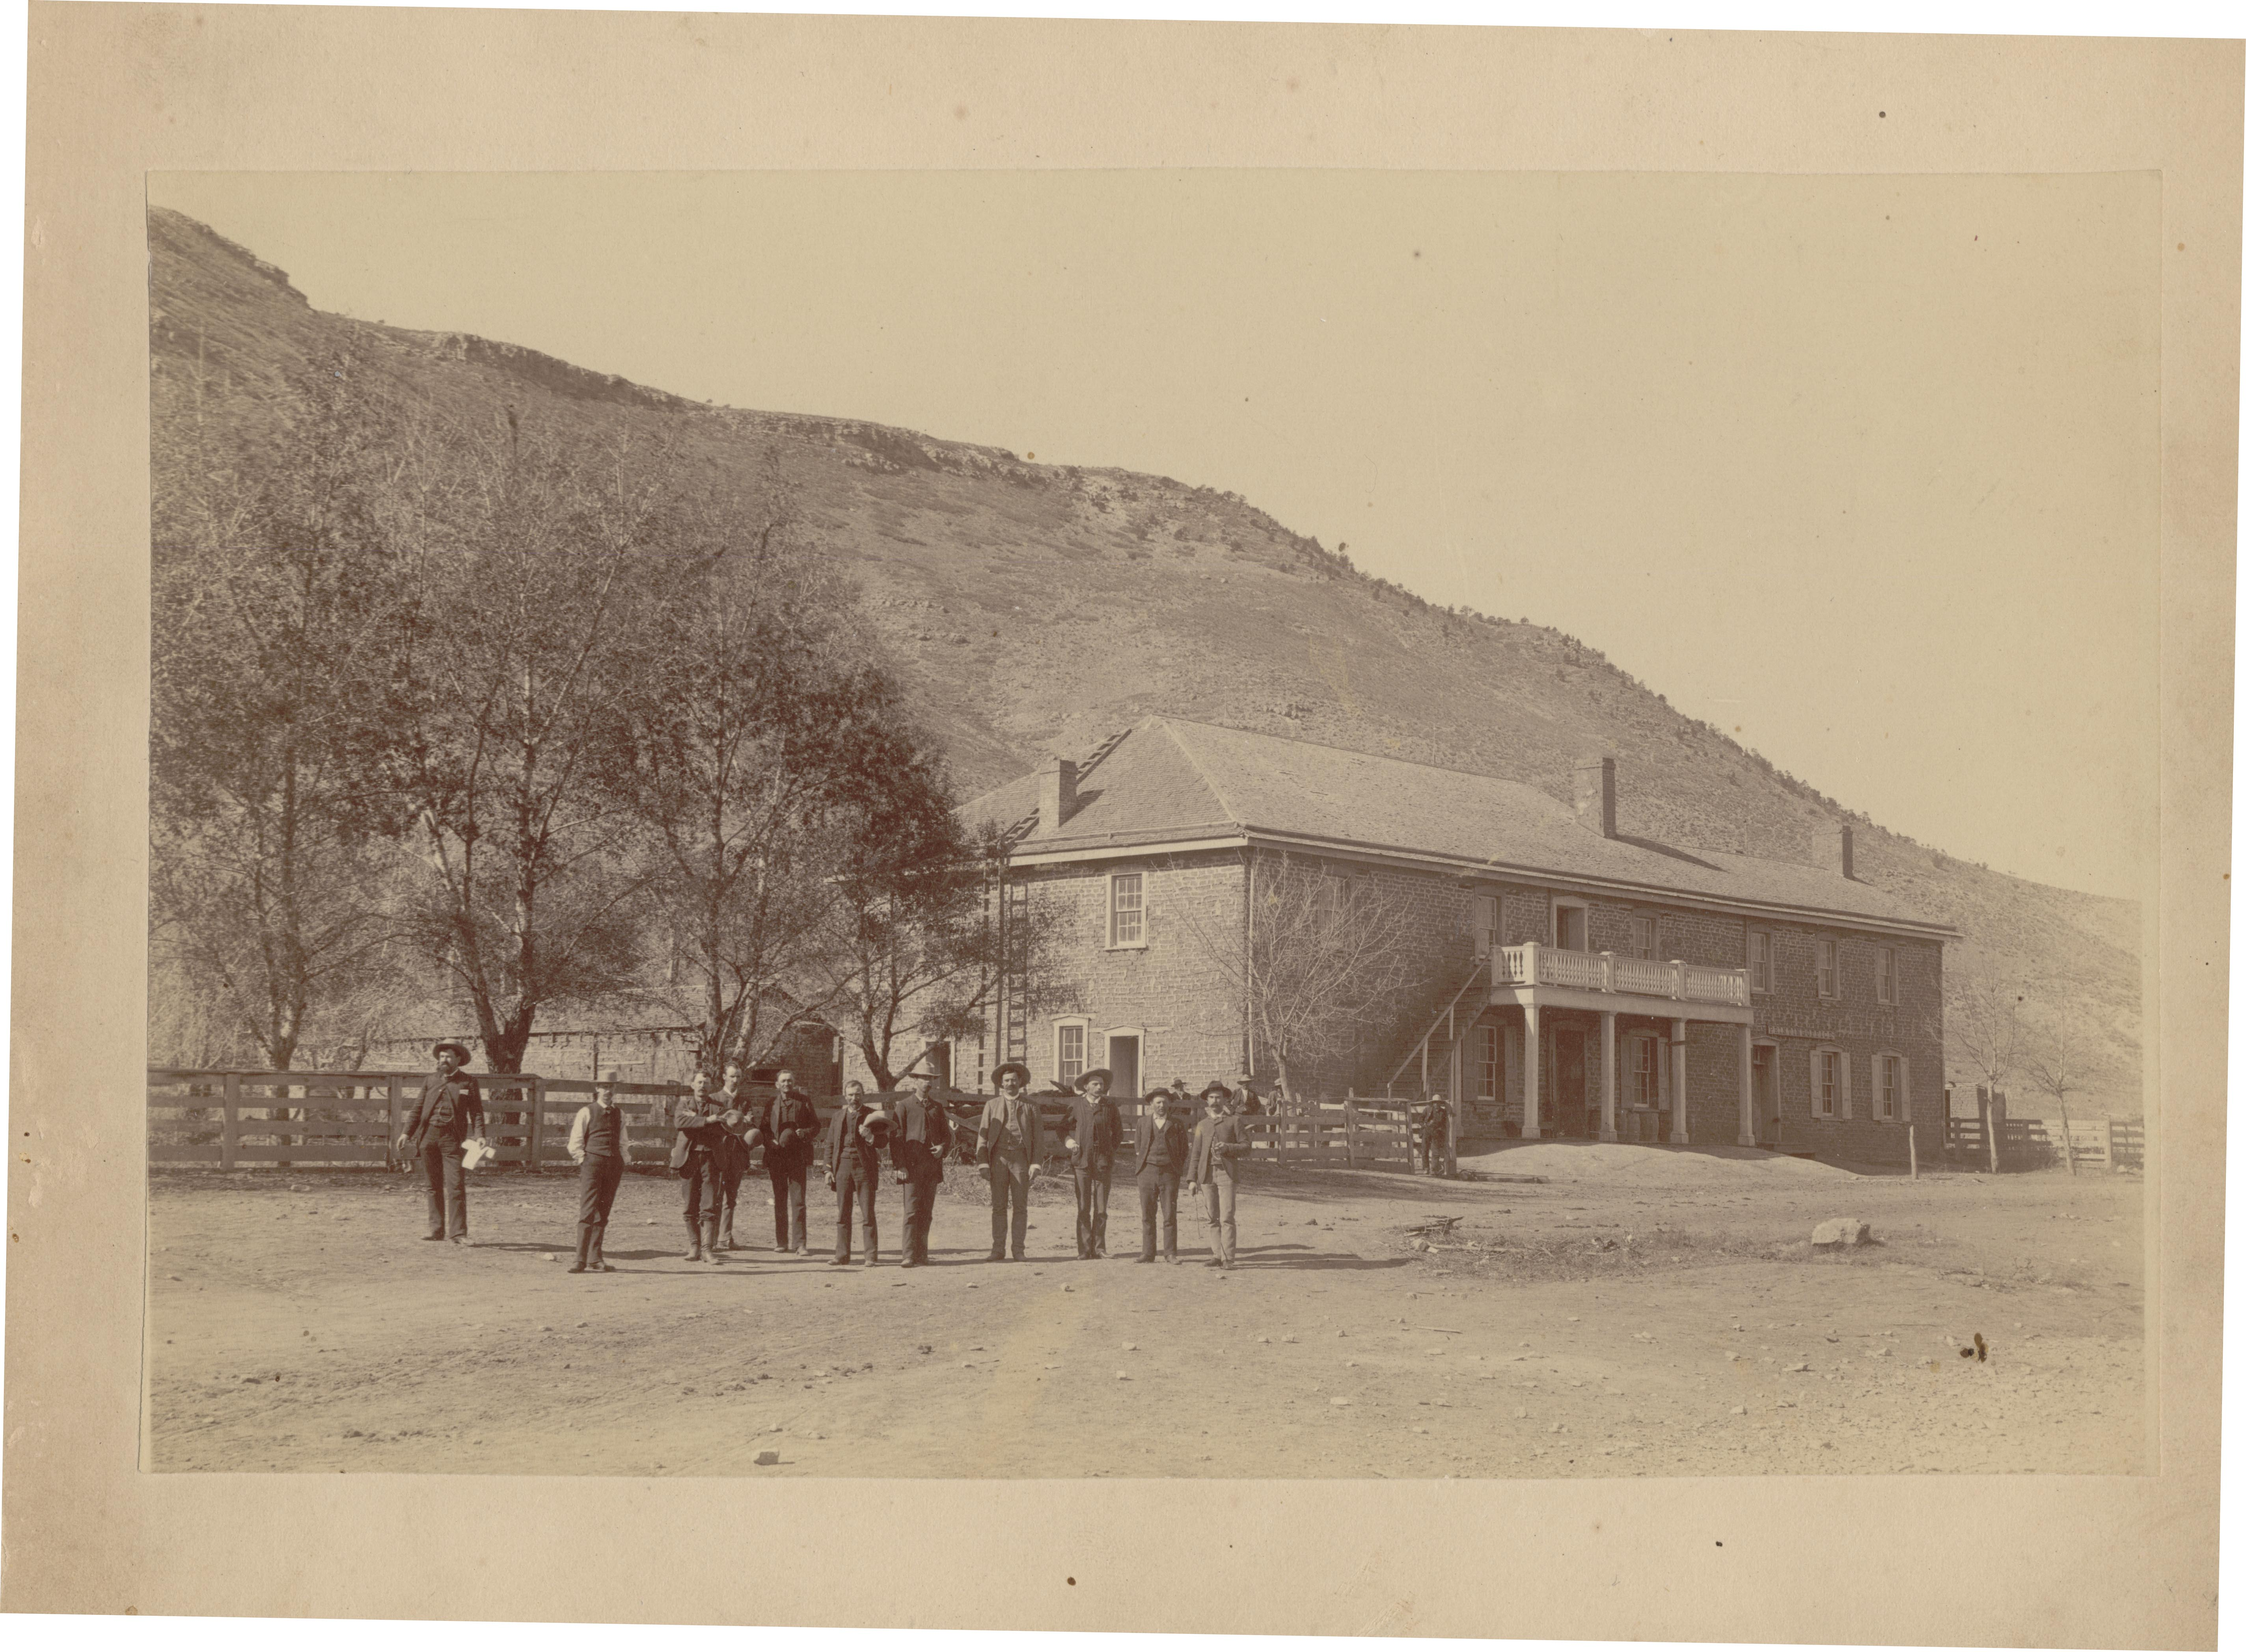 4_Taming New Mexico_NM PBS_Lincoln County Courthouse c. 1880